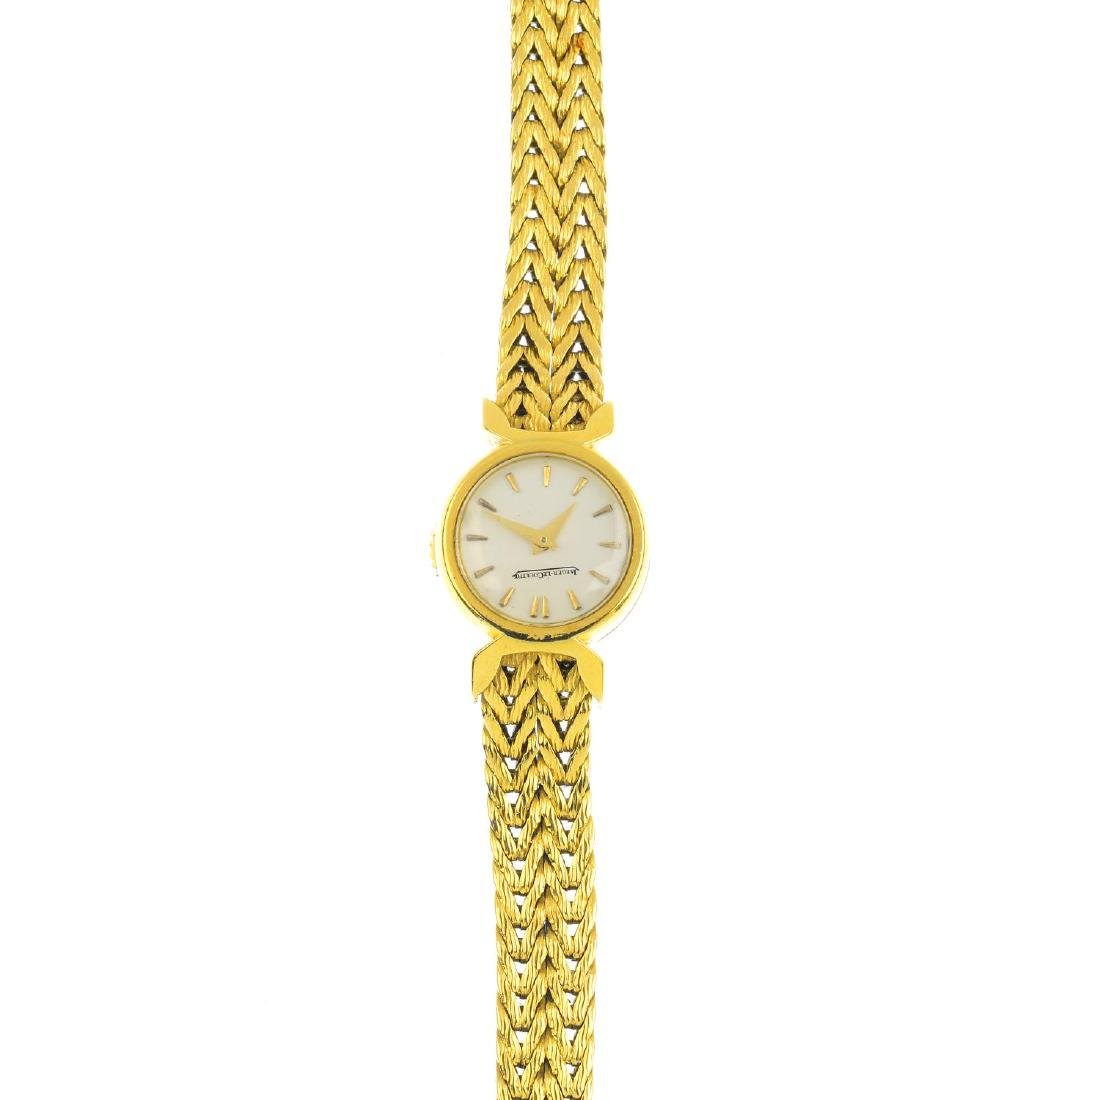 JAEGER-LECOULTRE  - a lady's bracelet watch. The